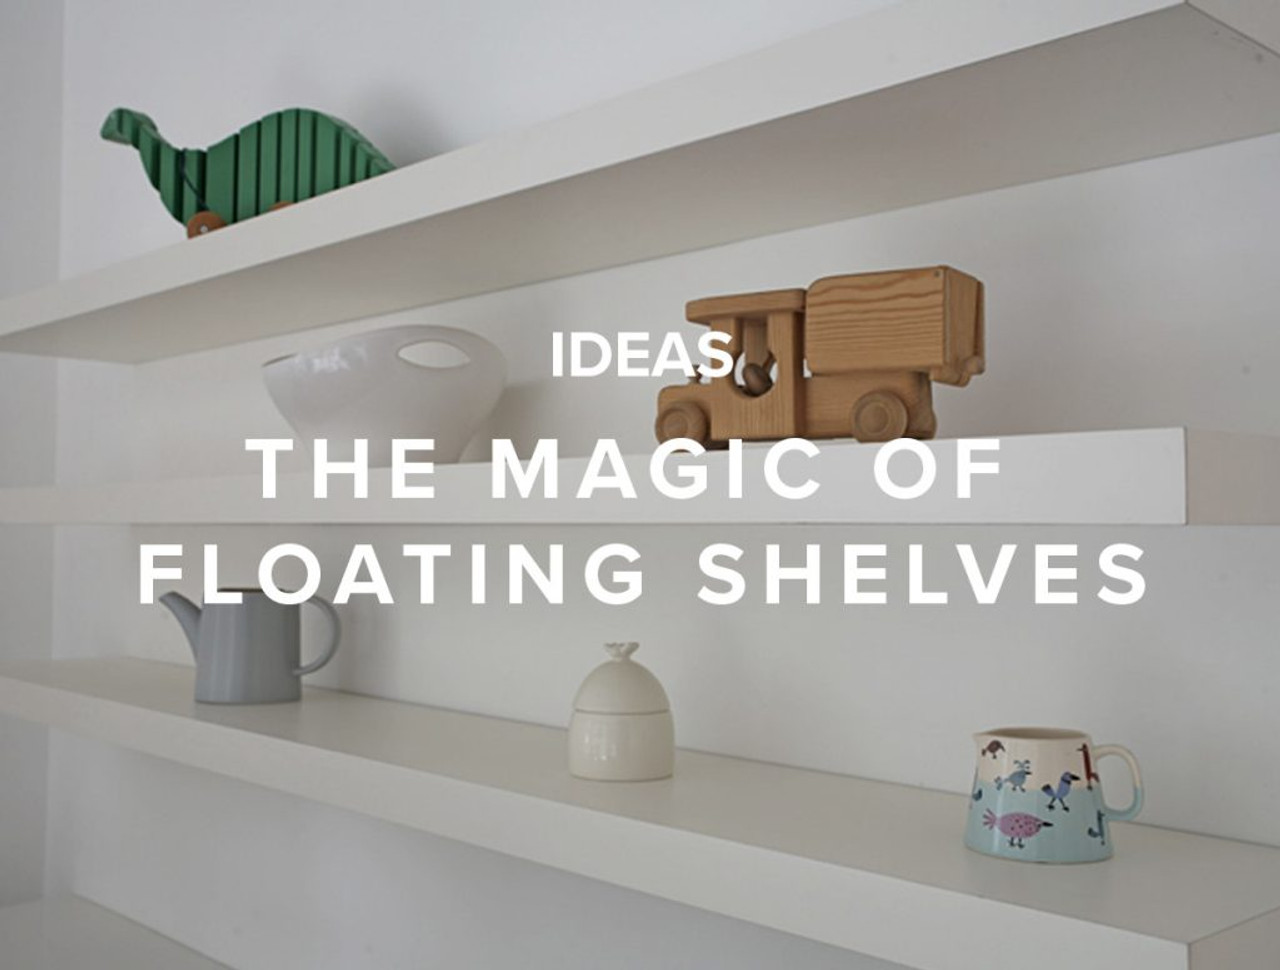 The Magic of Floating Shelves